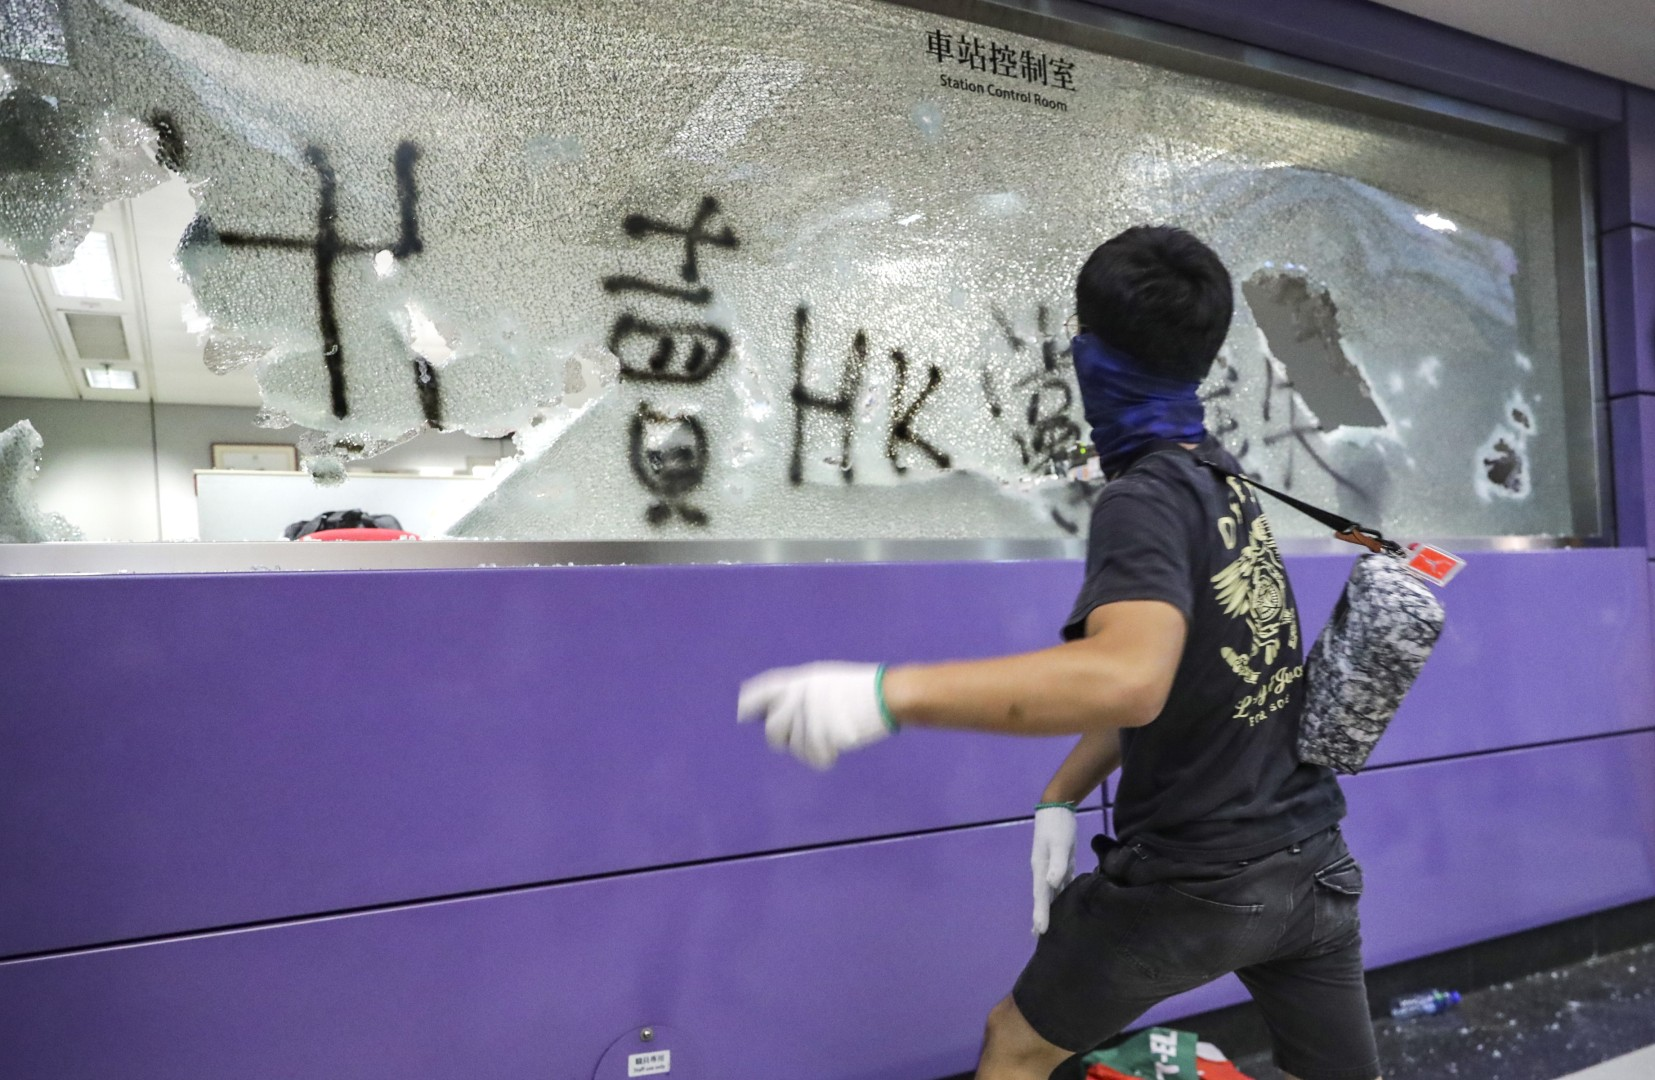 Stocks Blog: MTR shares tumble after weekend vandalism by